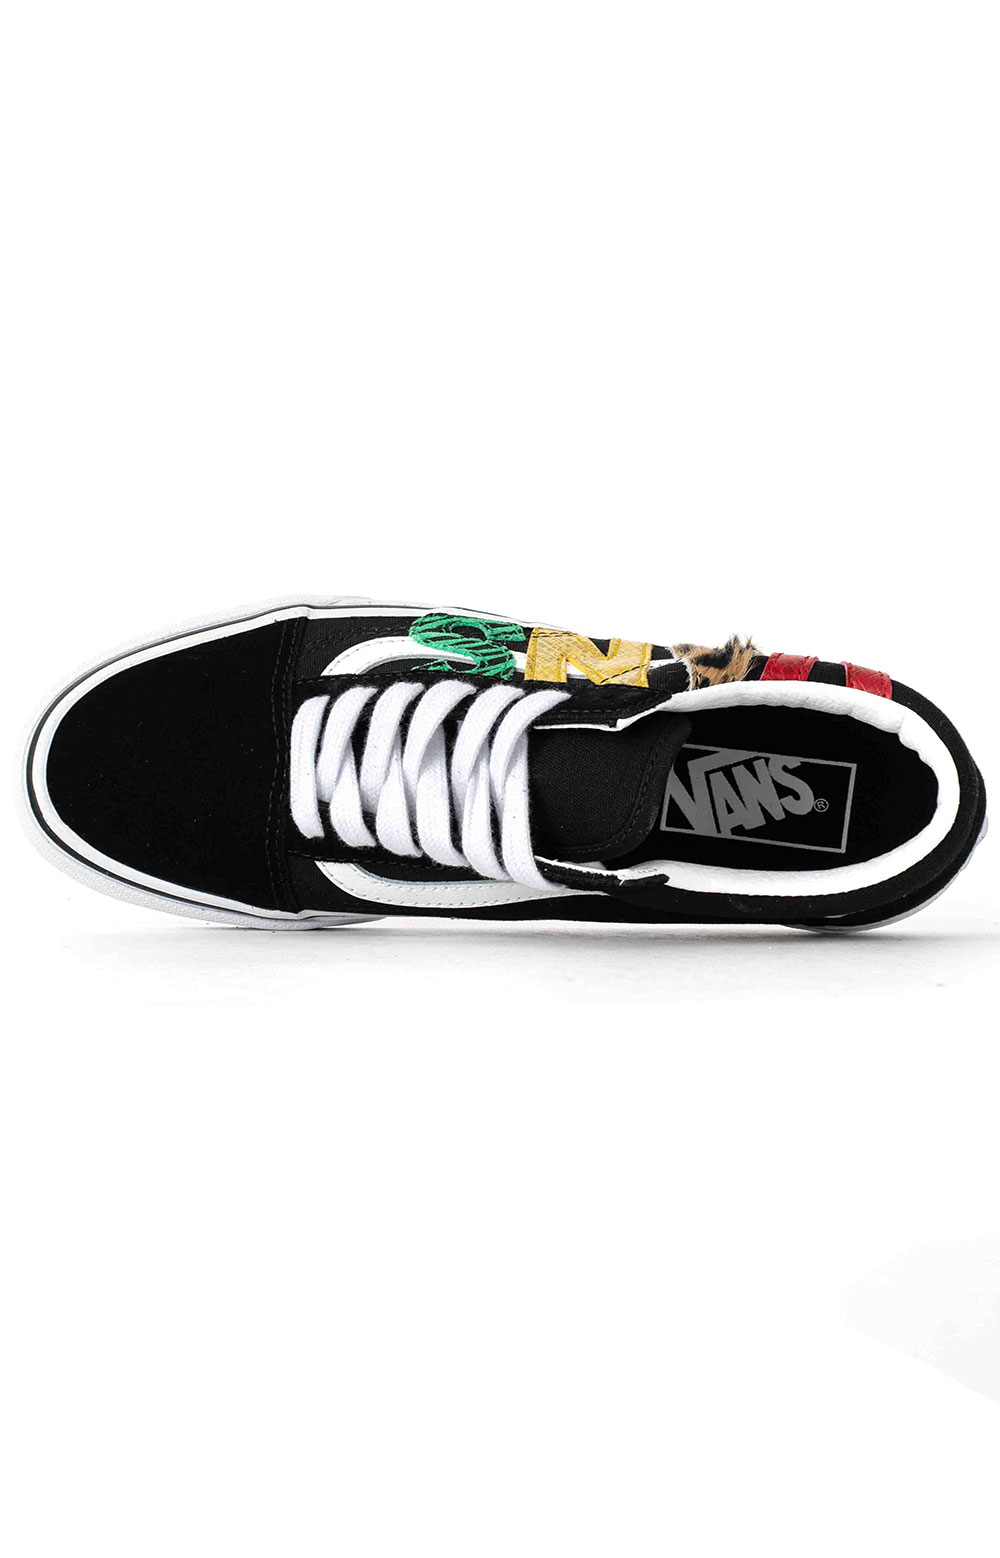 (U3BXF1) Multi Animal Old Skool Shoes - Rasta 2